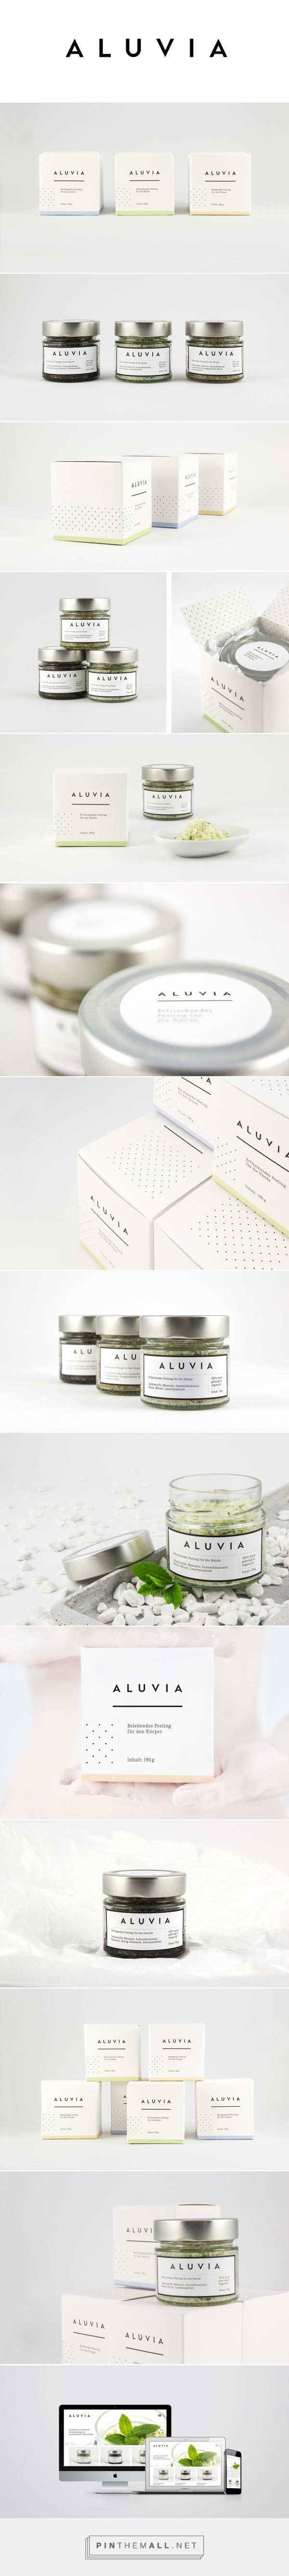 Aluvia Body Care Product Packaging by Christian Pannicke | Fivestar Branding – Design and Branding Agency & Inspiration Gallery | #PackagingInspiration